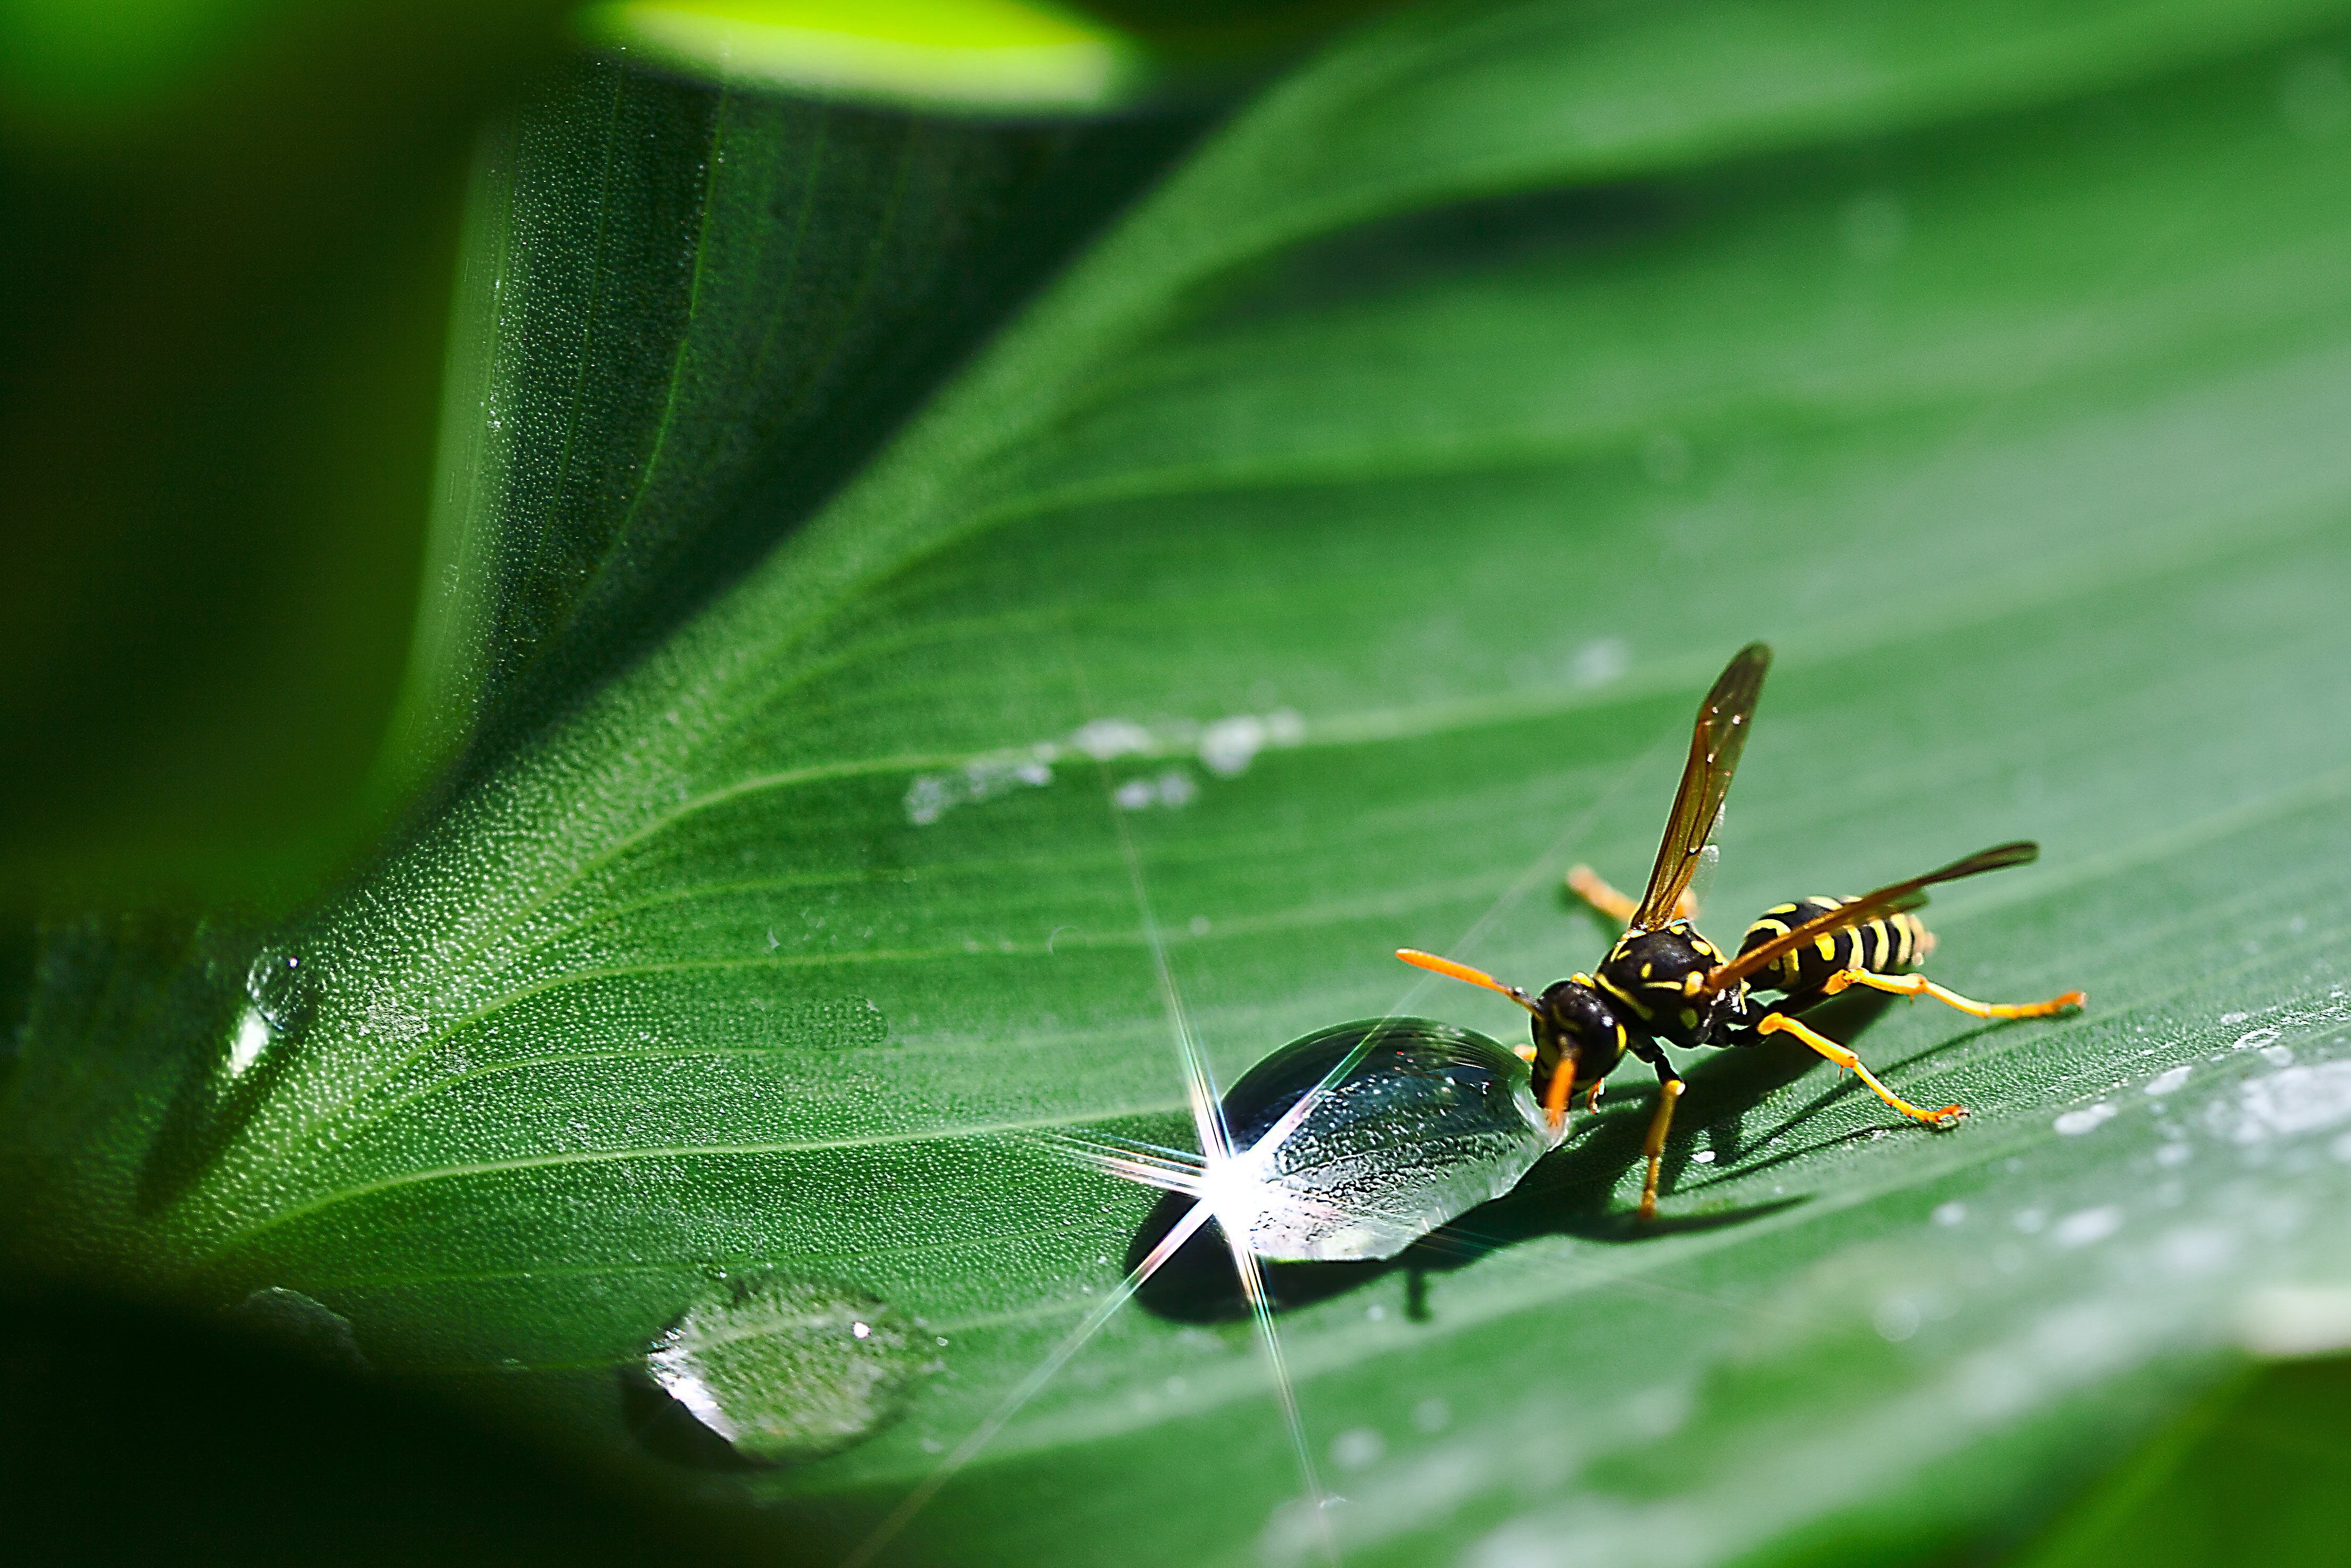 Paper Wasp Beside Dew Drop on Plant Leaf